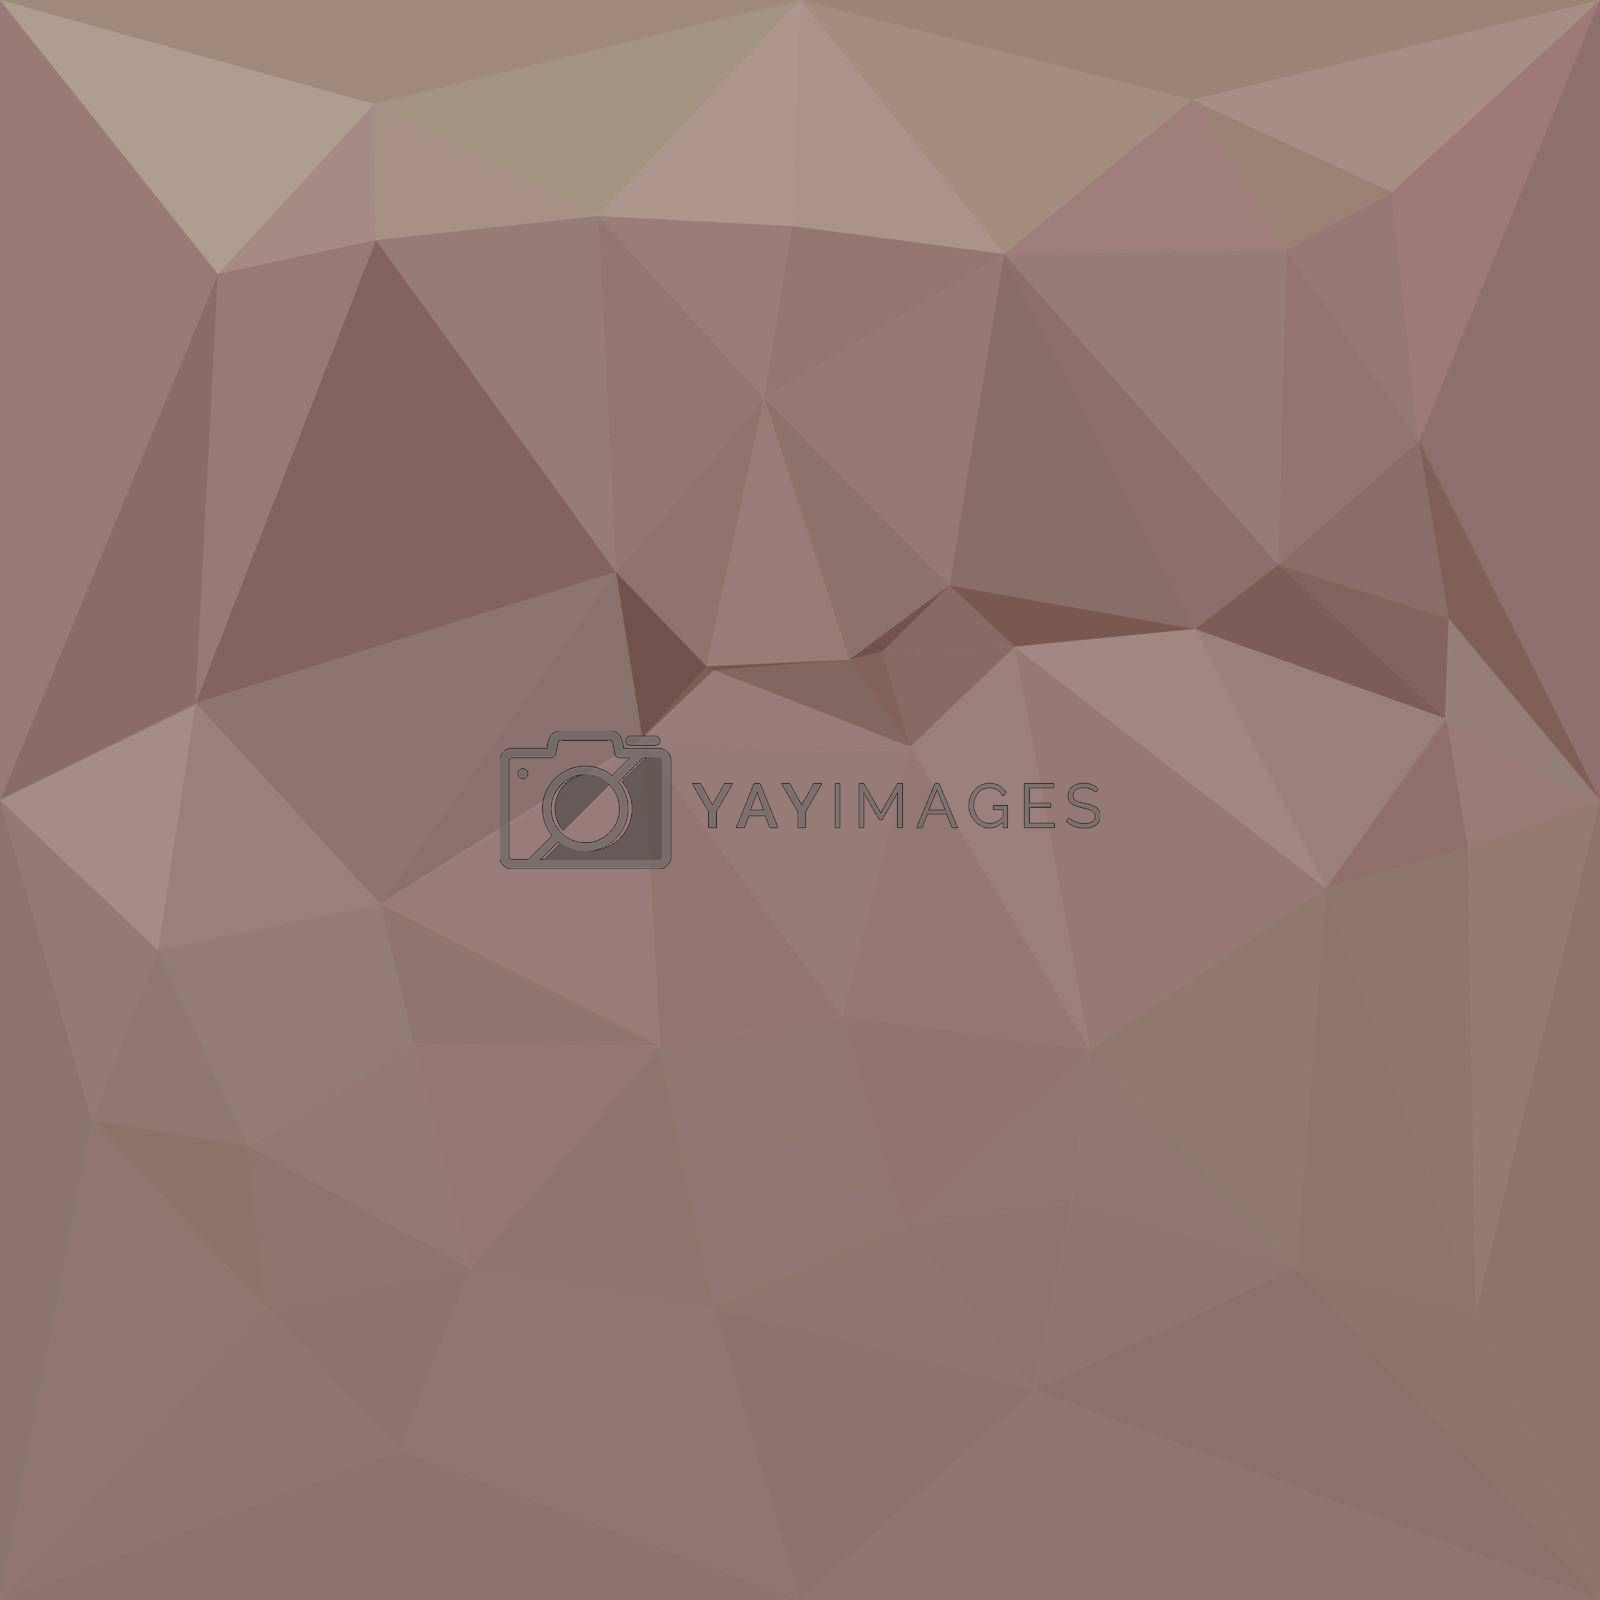 Low polygon style illustration of a copper rose abstract geometric background.